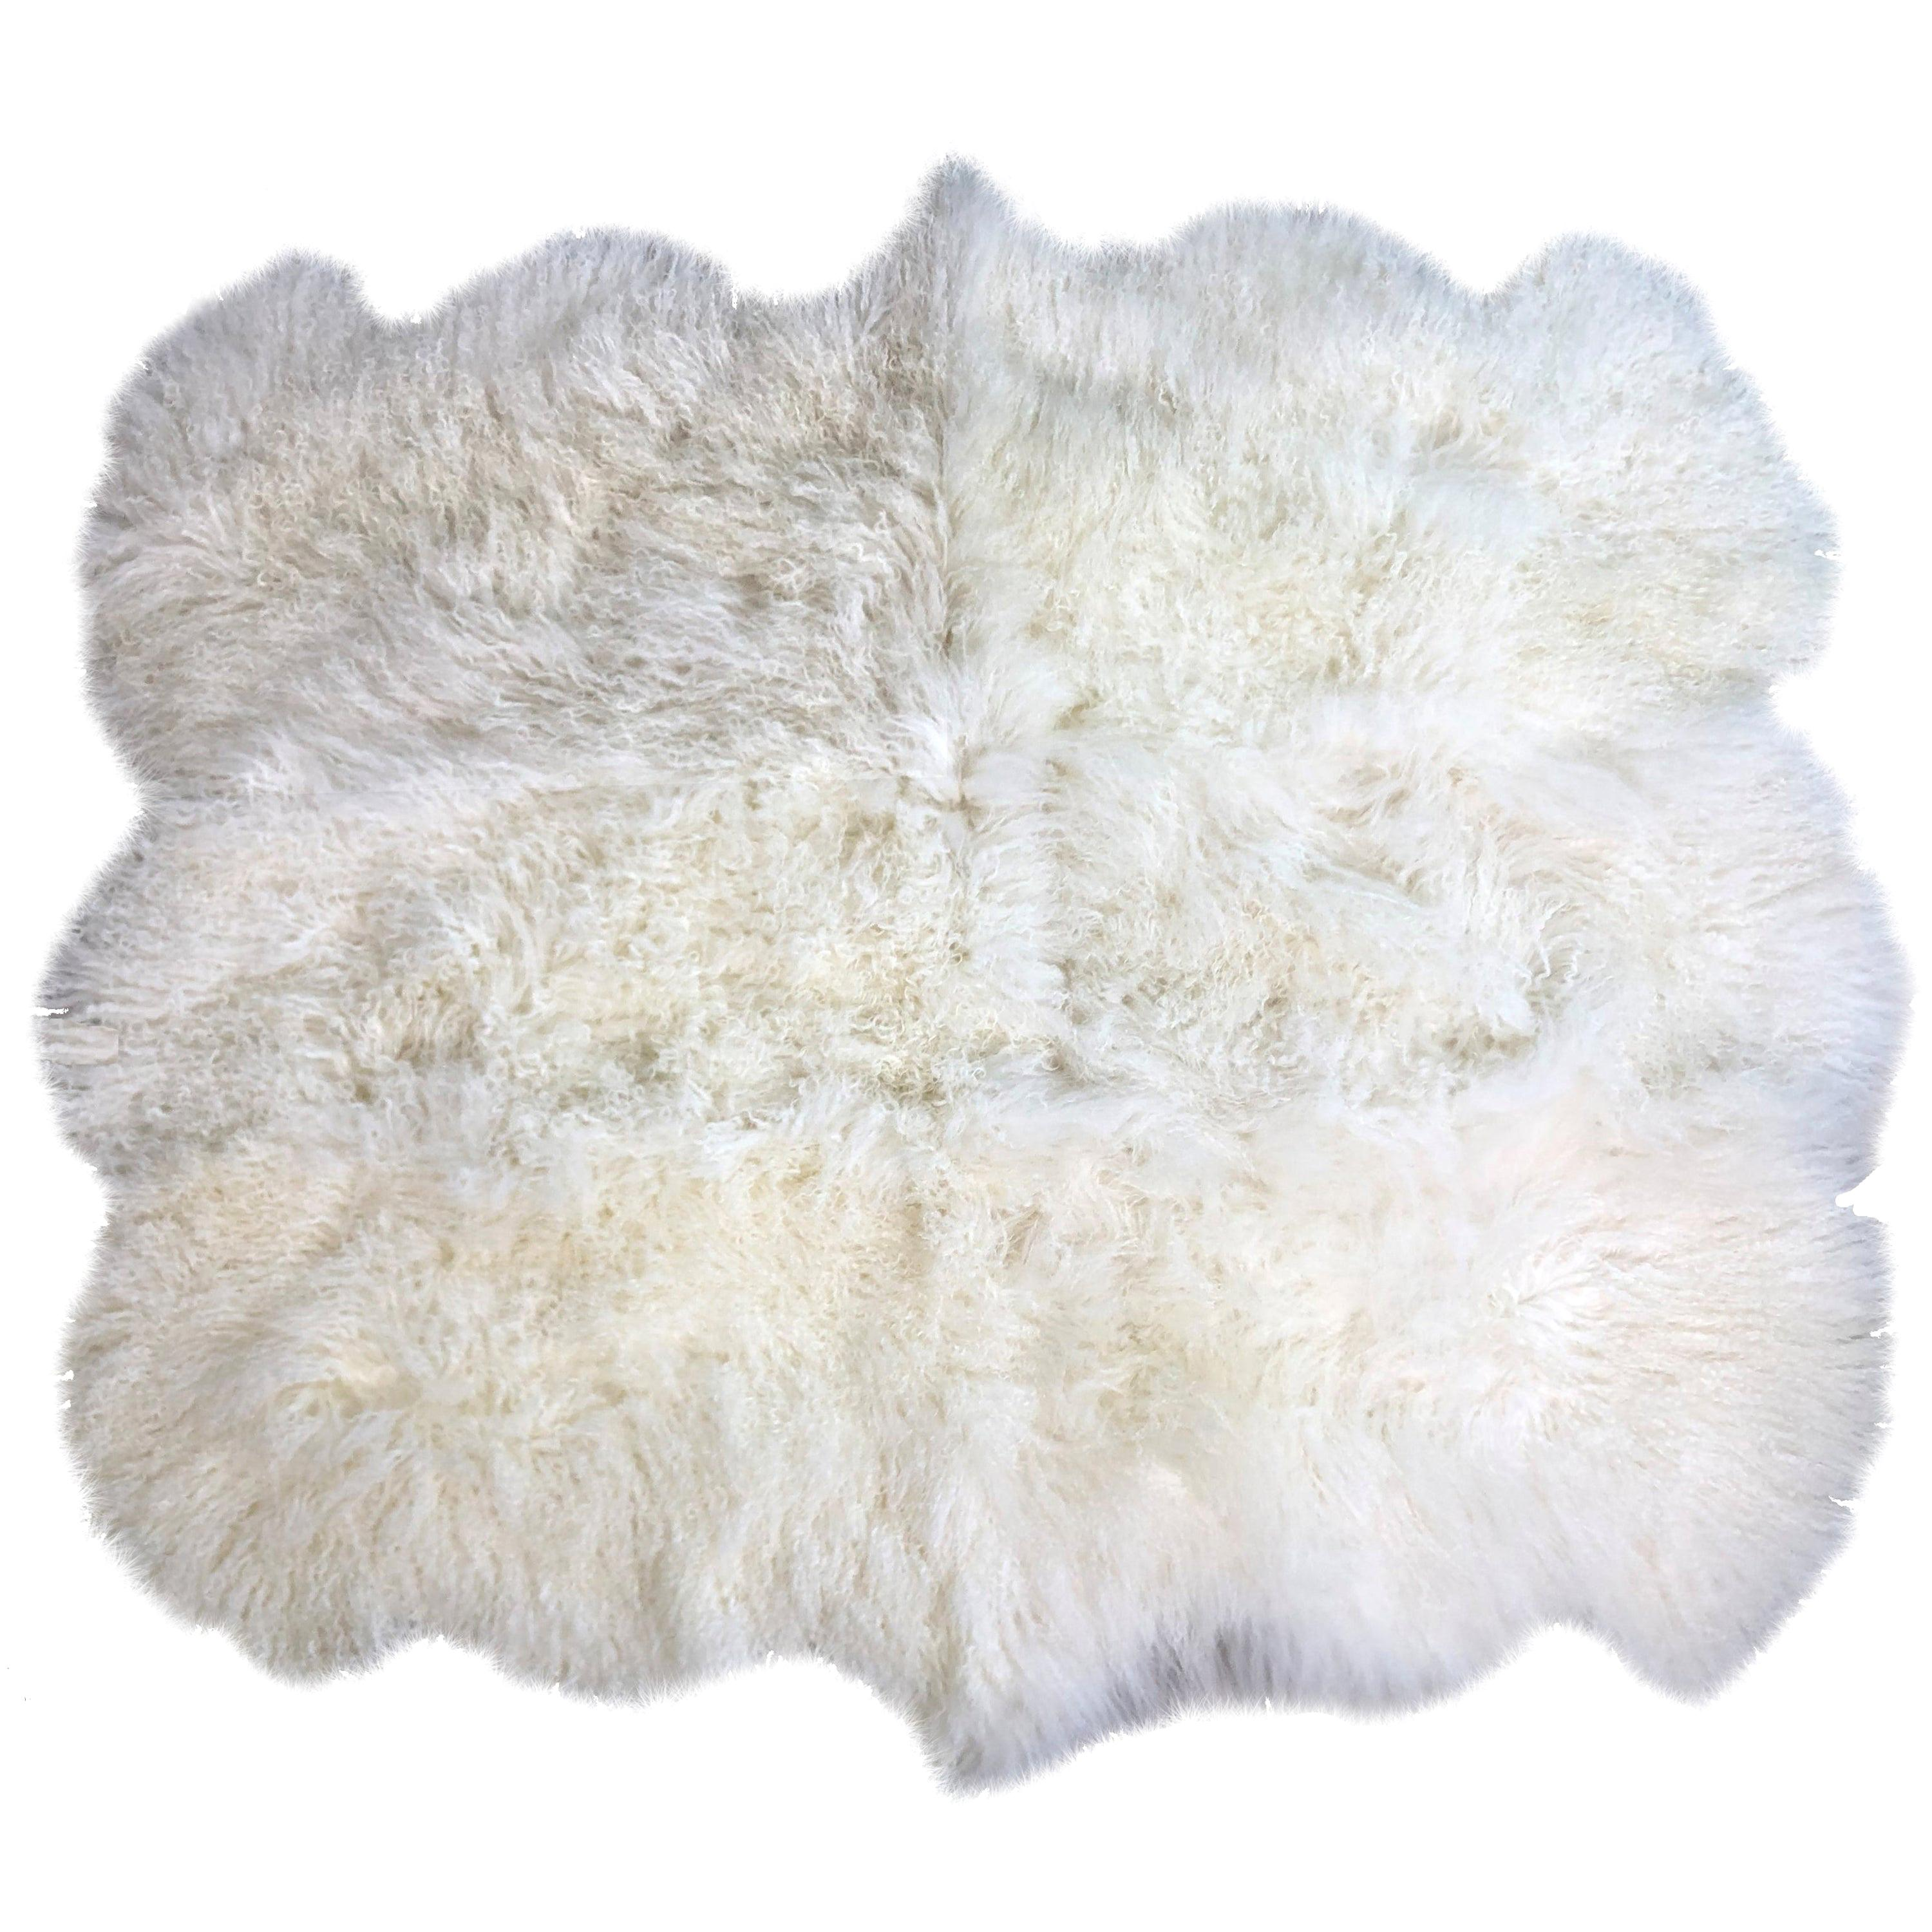 Natural White Mongolian Fur Rug, Mongolian Sheepskin Rug